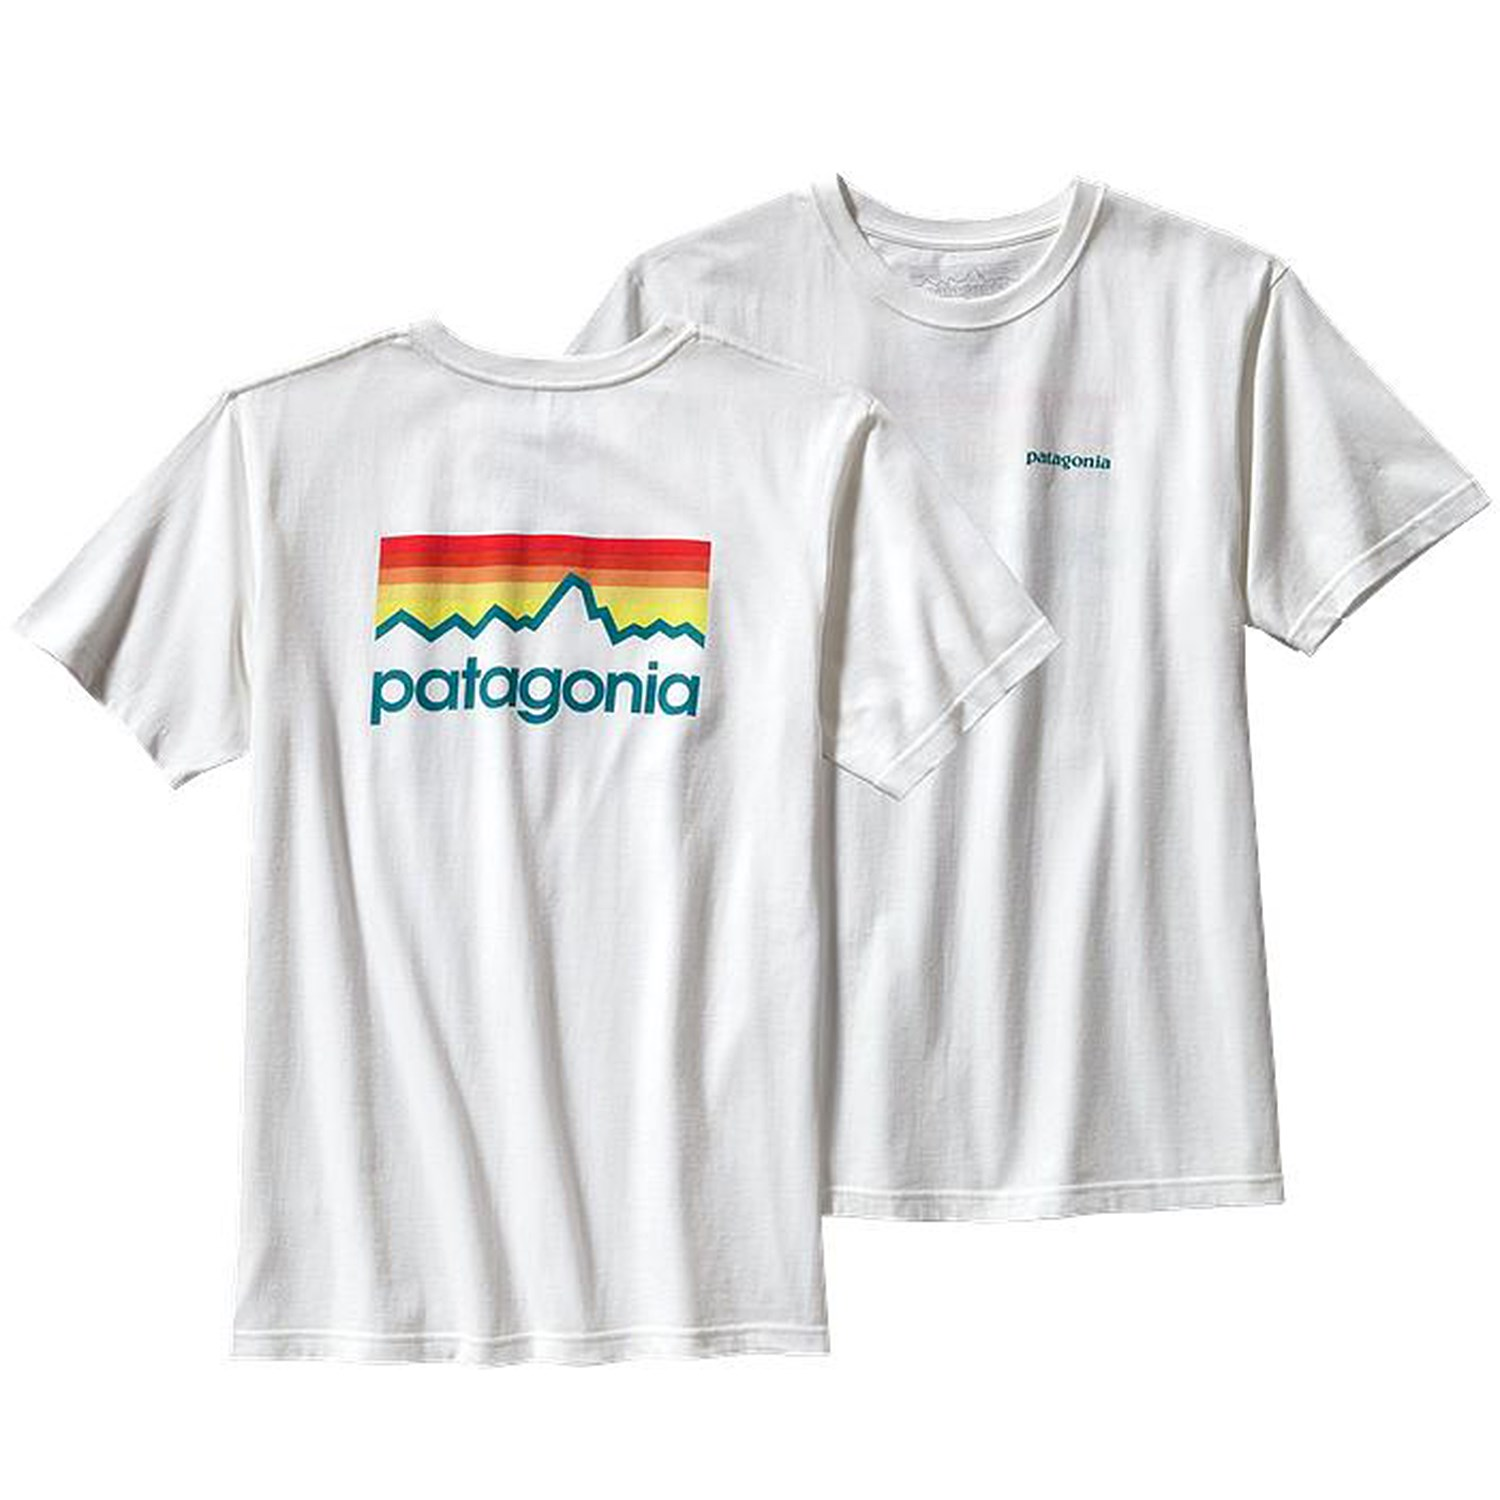 patagonia line logo cotton t shirt evo. Black Bedroom Furniture Sets. Home Design Ideas